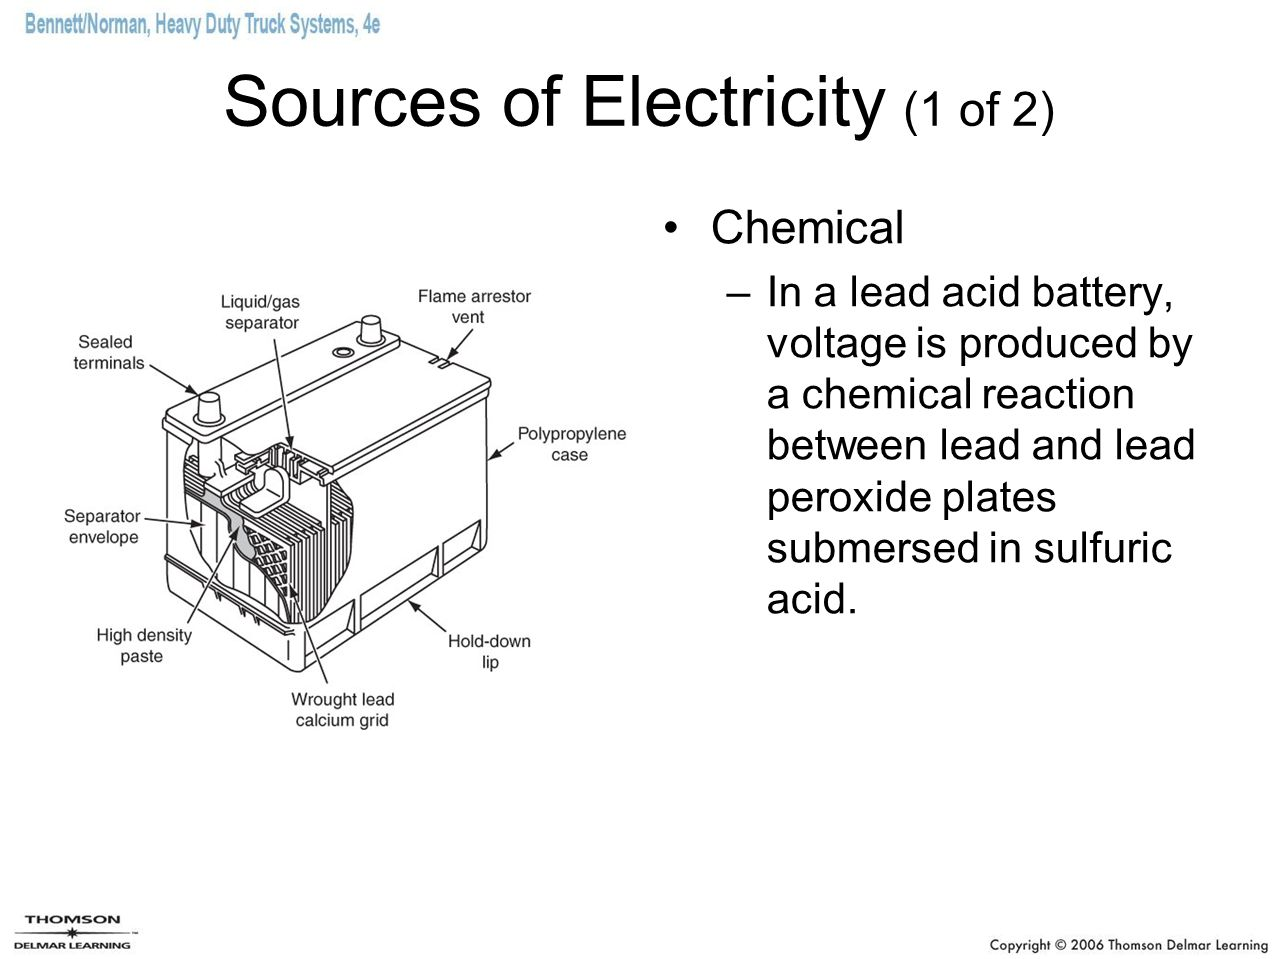 Sources of Electricity (1 of 2)